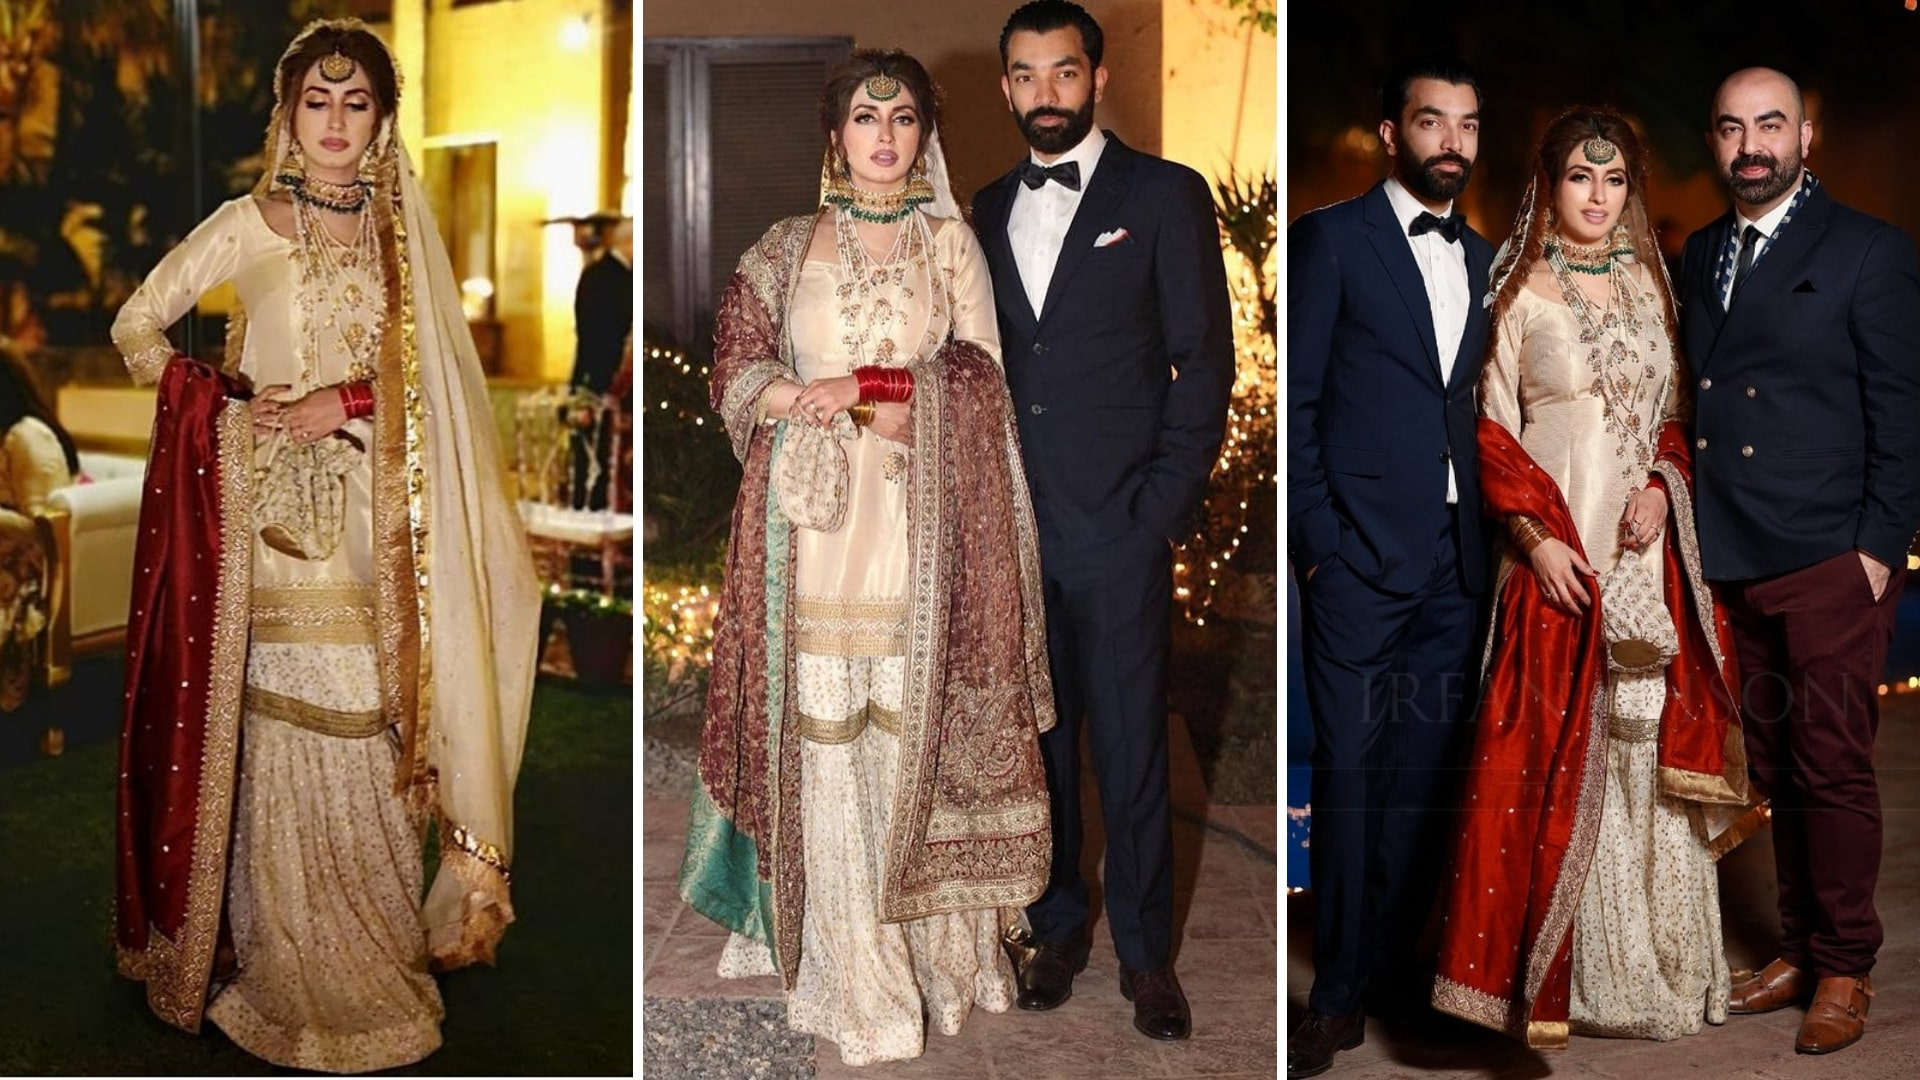 Iman Aly and Babar Bhatti Reception Picture